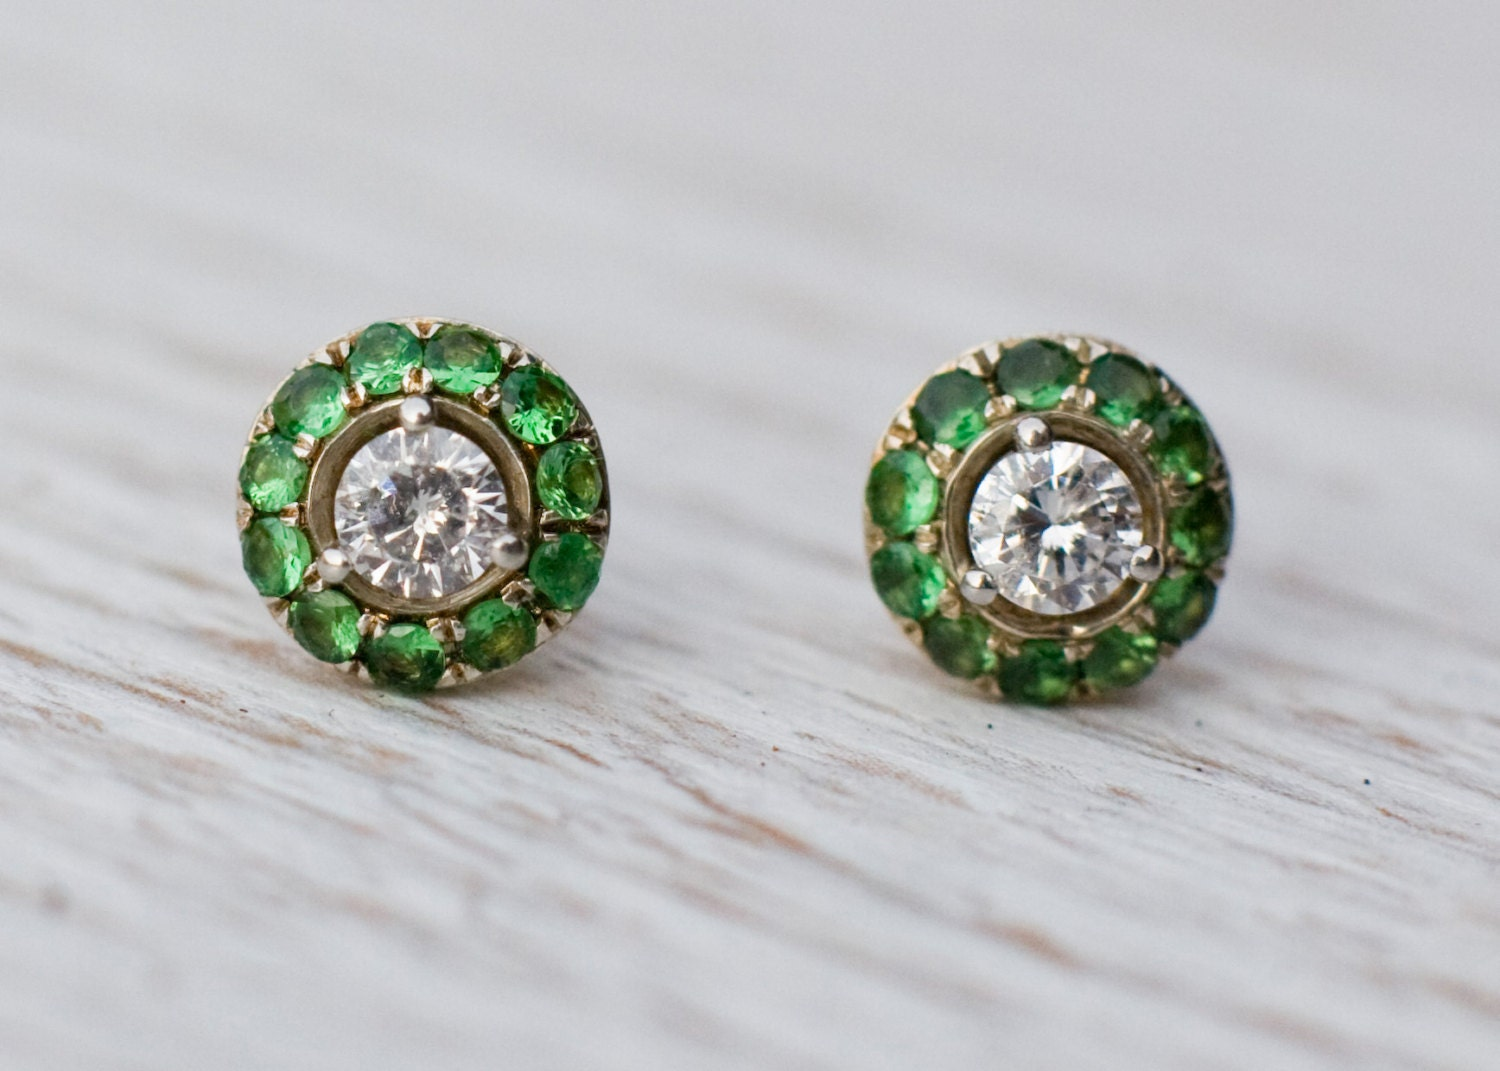 stud earrings with green garnet in platinum and 14k